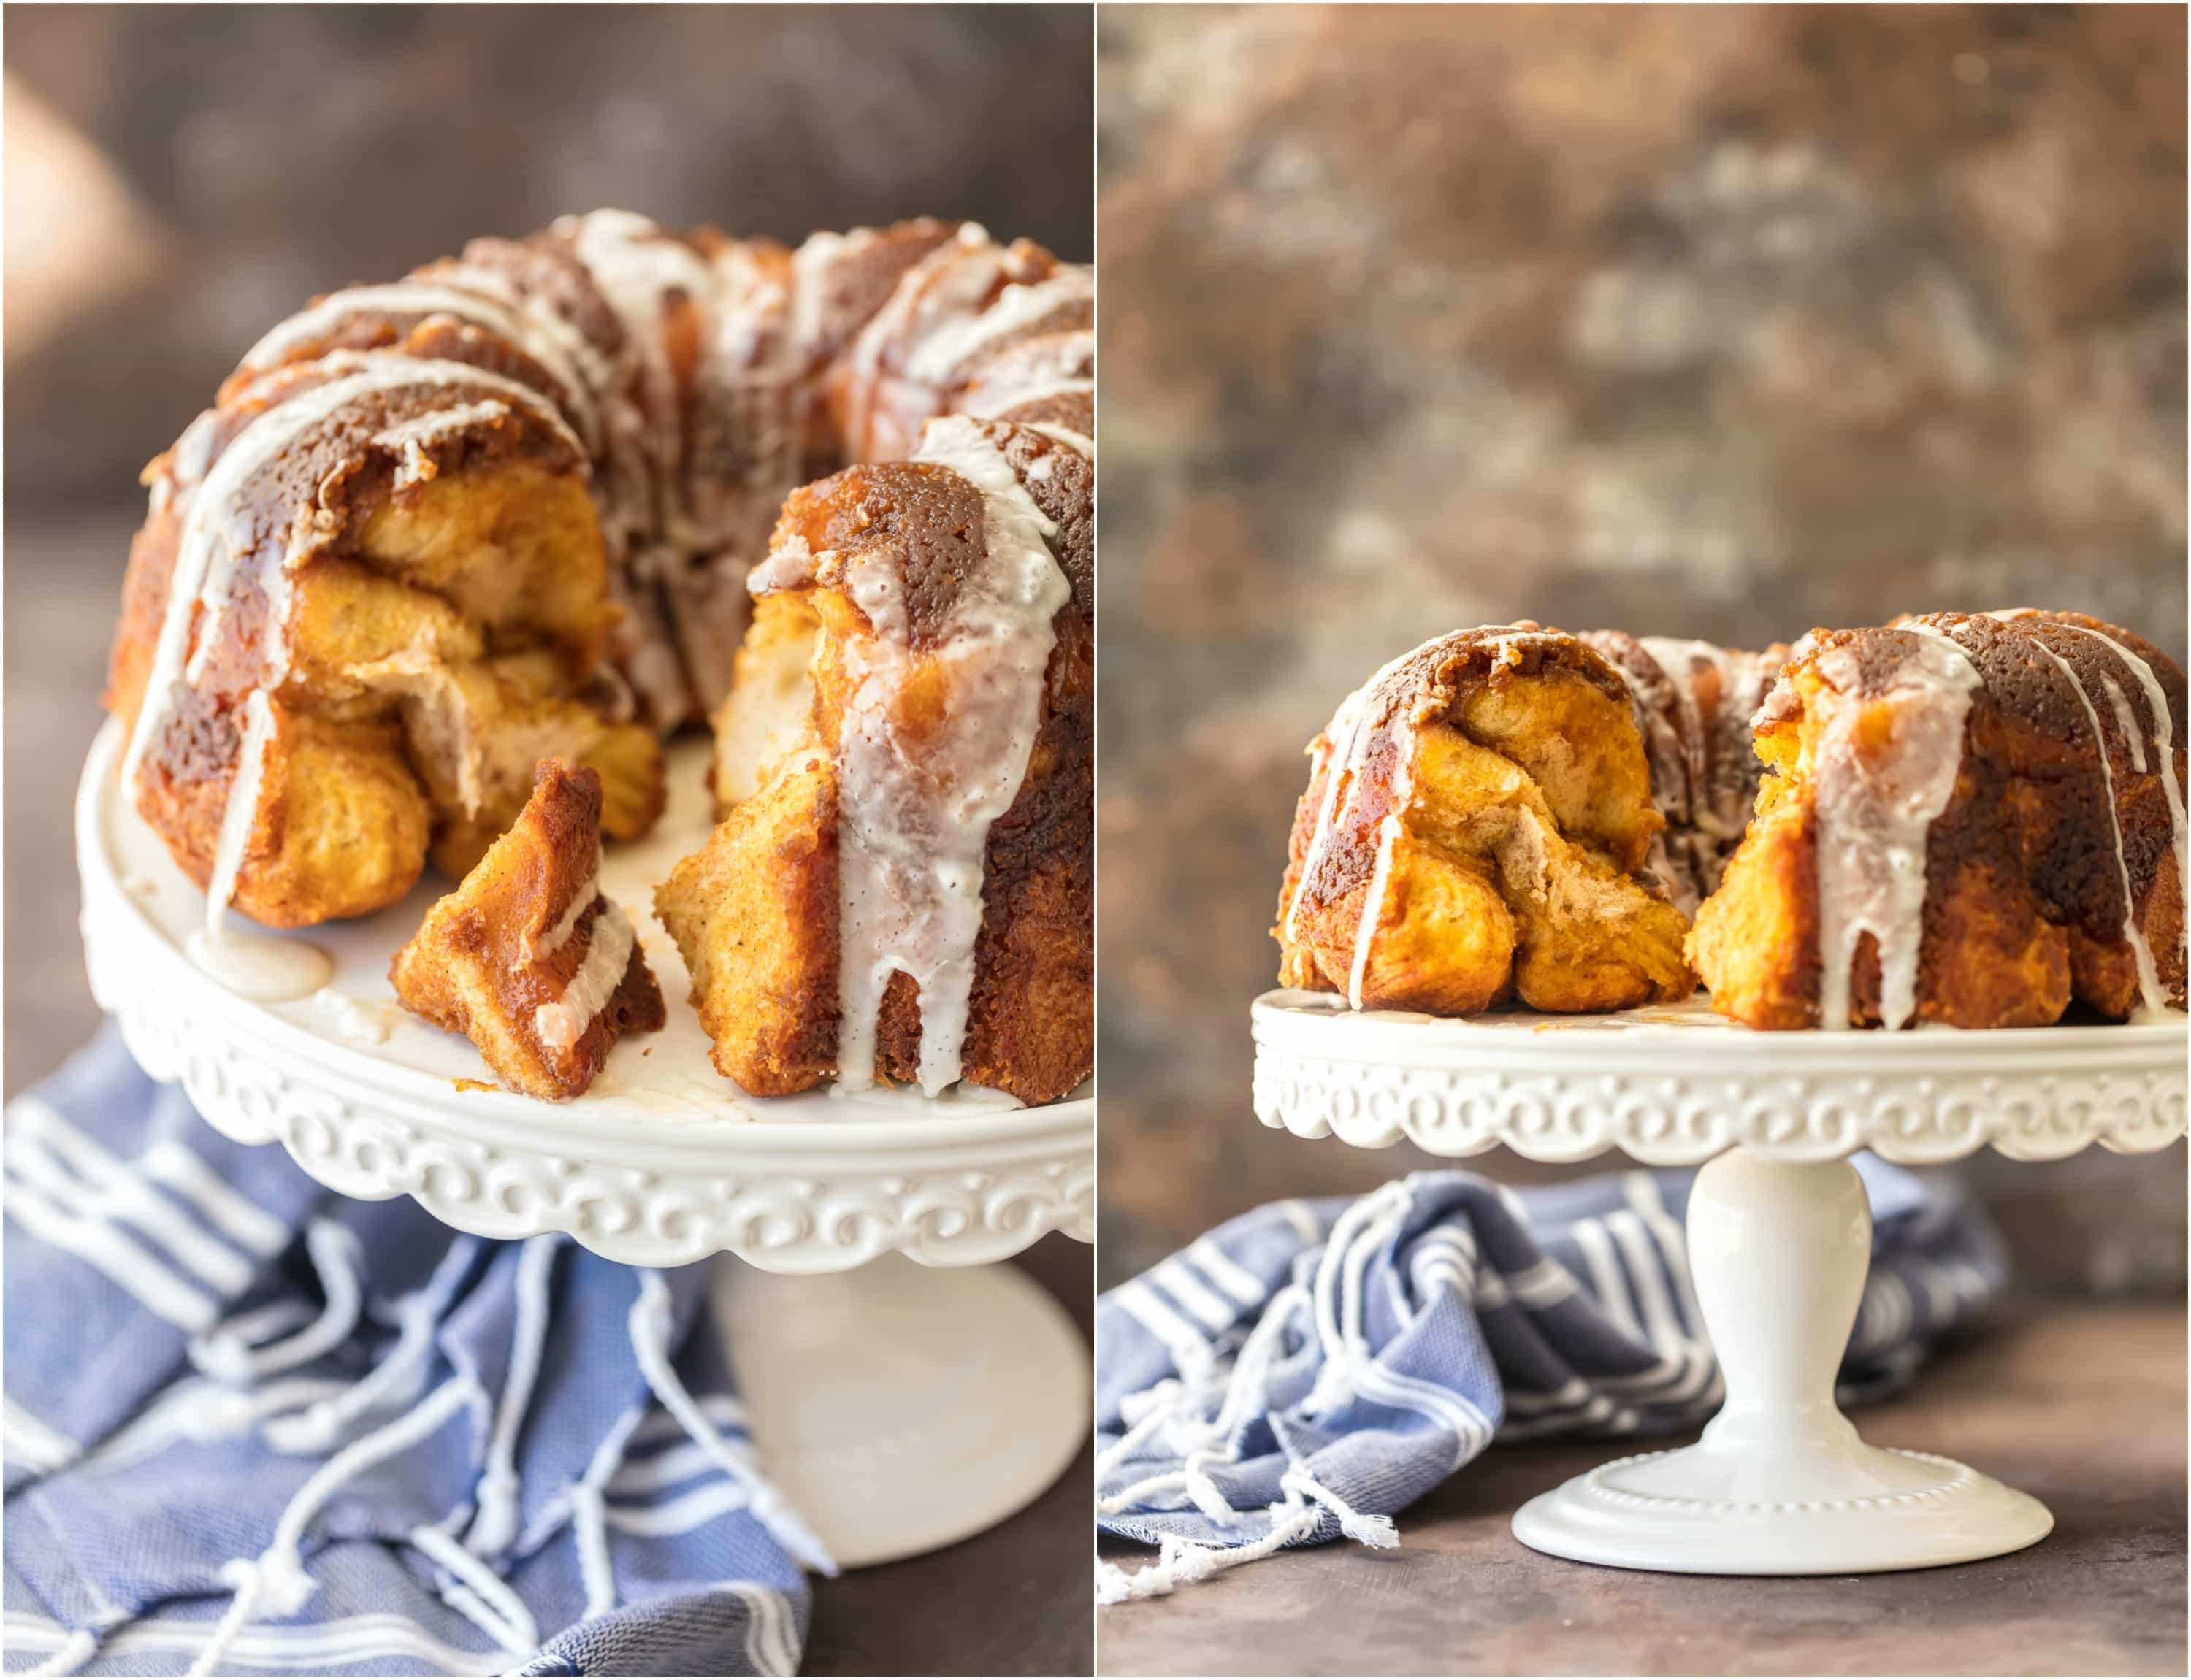 part of monkey bread gone from cake stand